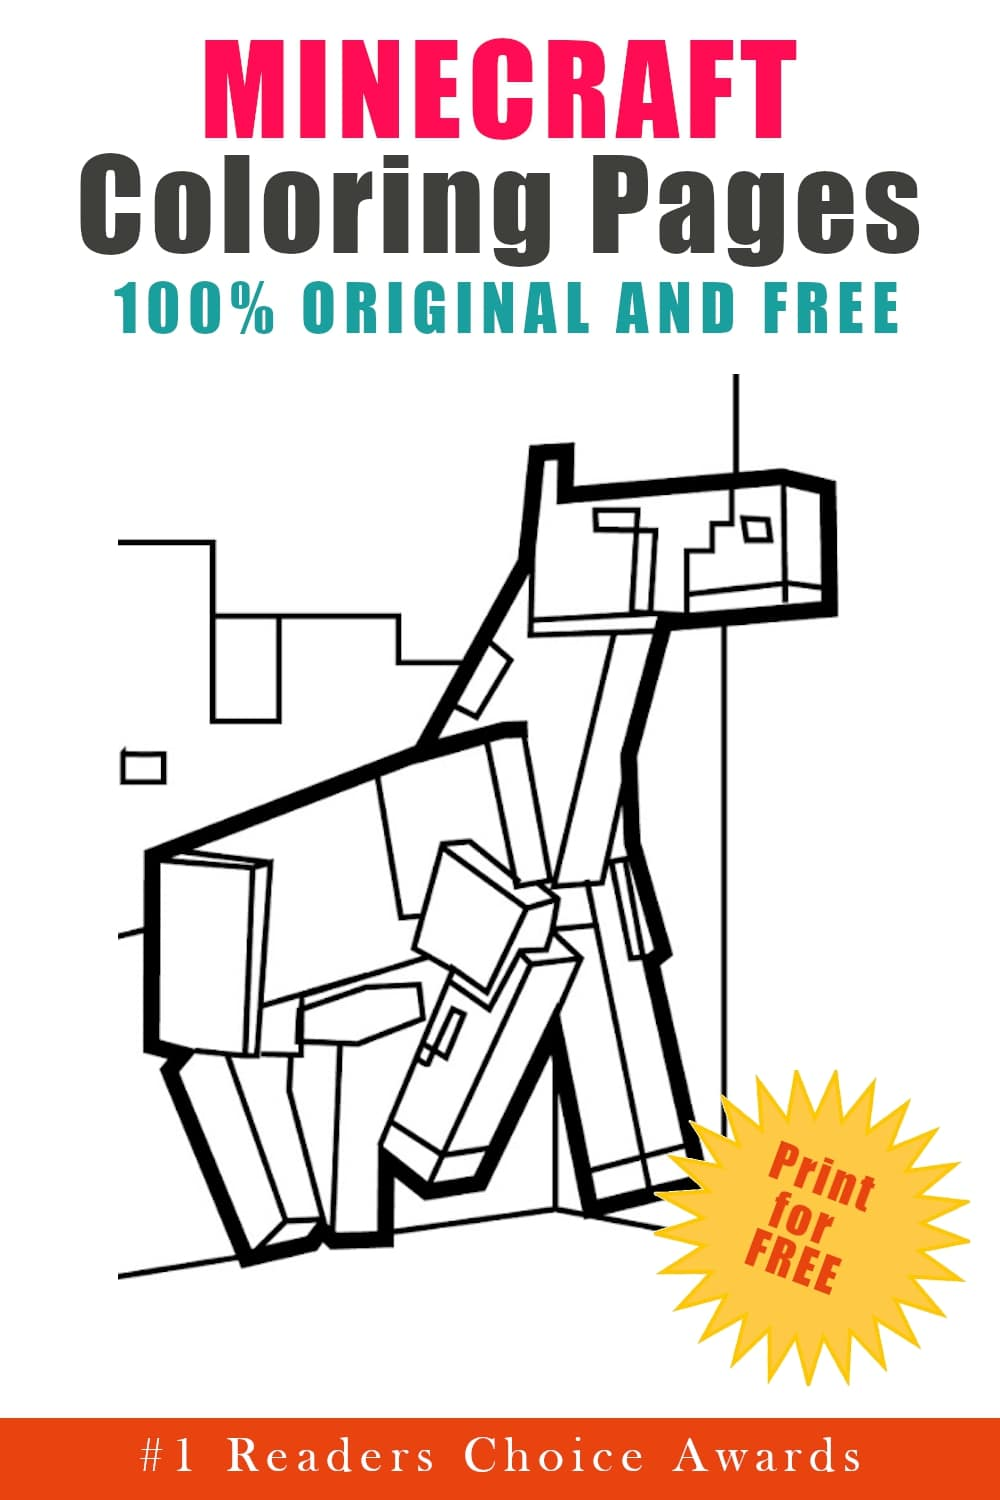 original and free minecraft coloring pages